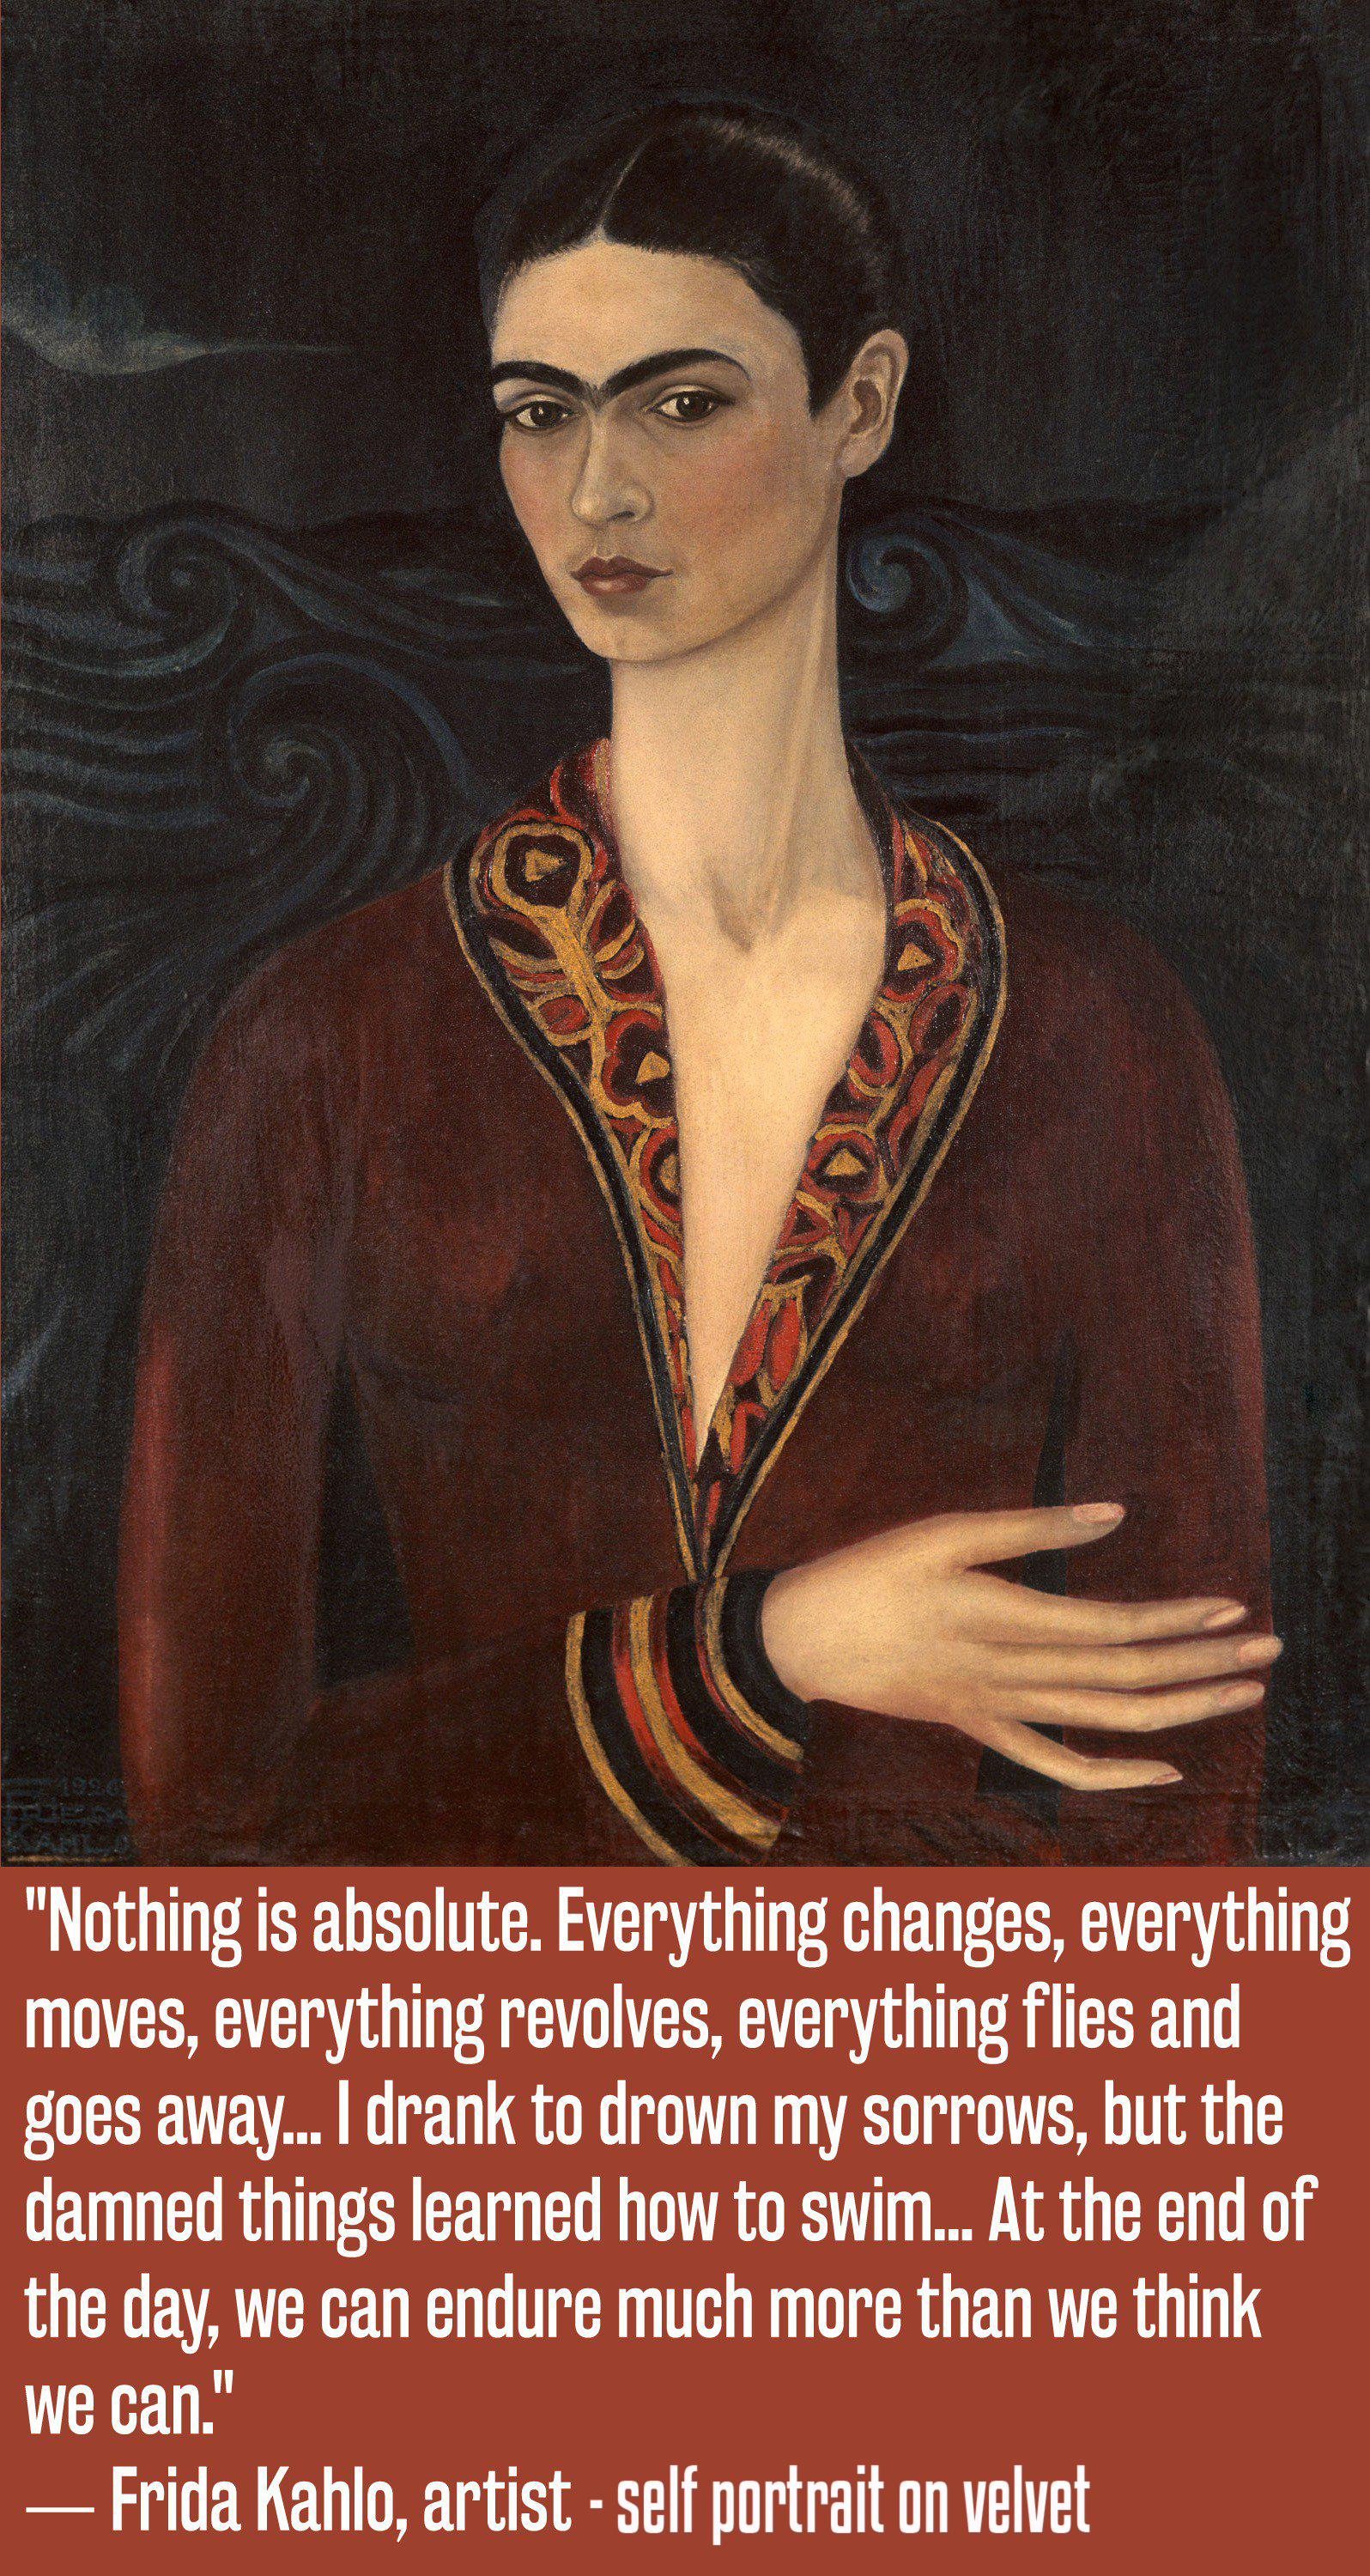 """Nothing is absolute. Everything changes, everything moves, everything revolves, everything flies and goes away. I drank to drown my sorrows, but the damned things learned how to swim. At the end of the day, we can endure much more than we think we can."" ― Frida Kahlo, self portrait (1596×3000)"